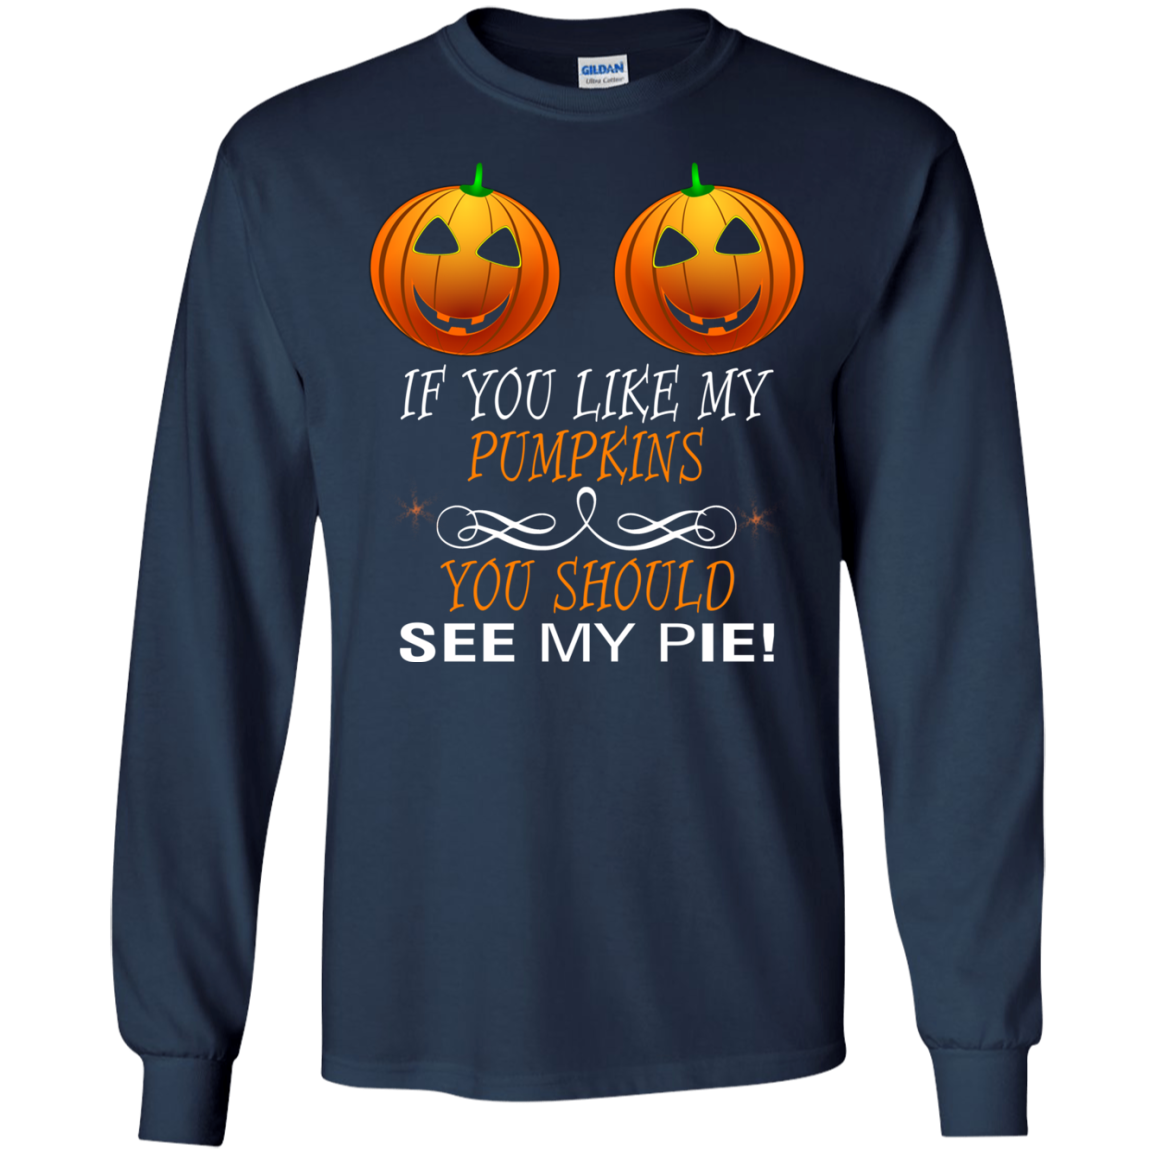 If You Like My Pumpkins You Should See My Pie Shirt -8387